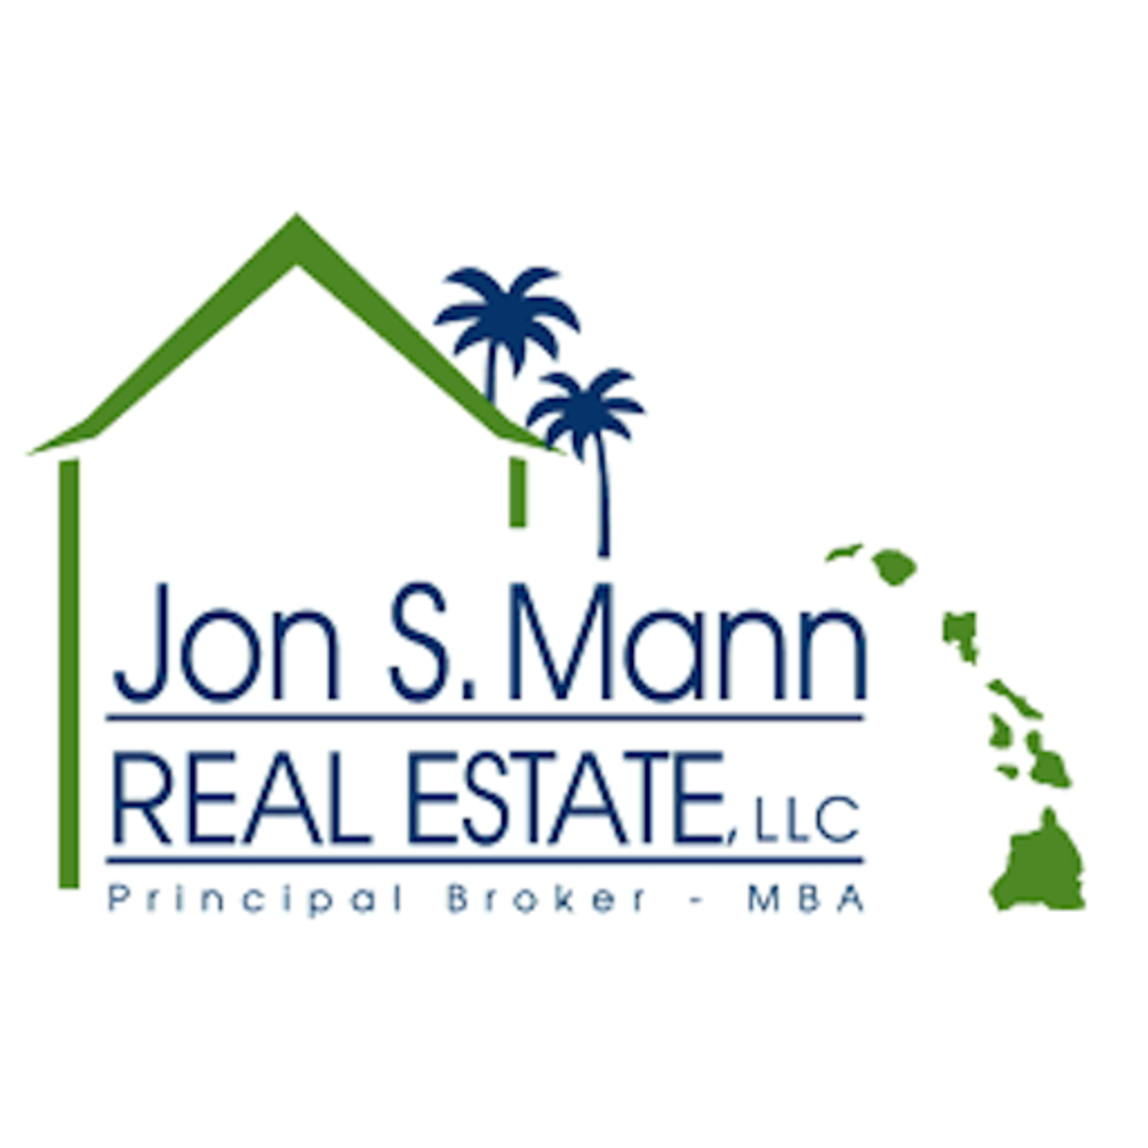 Jon S. Mann Real Estate